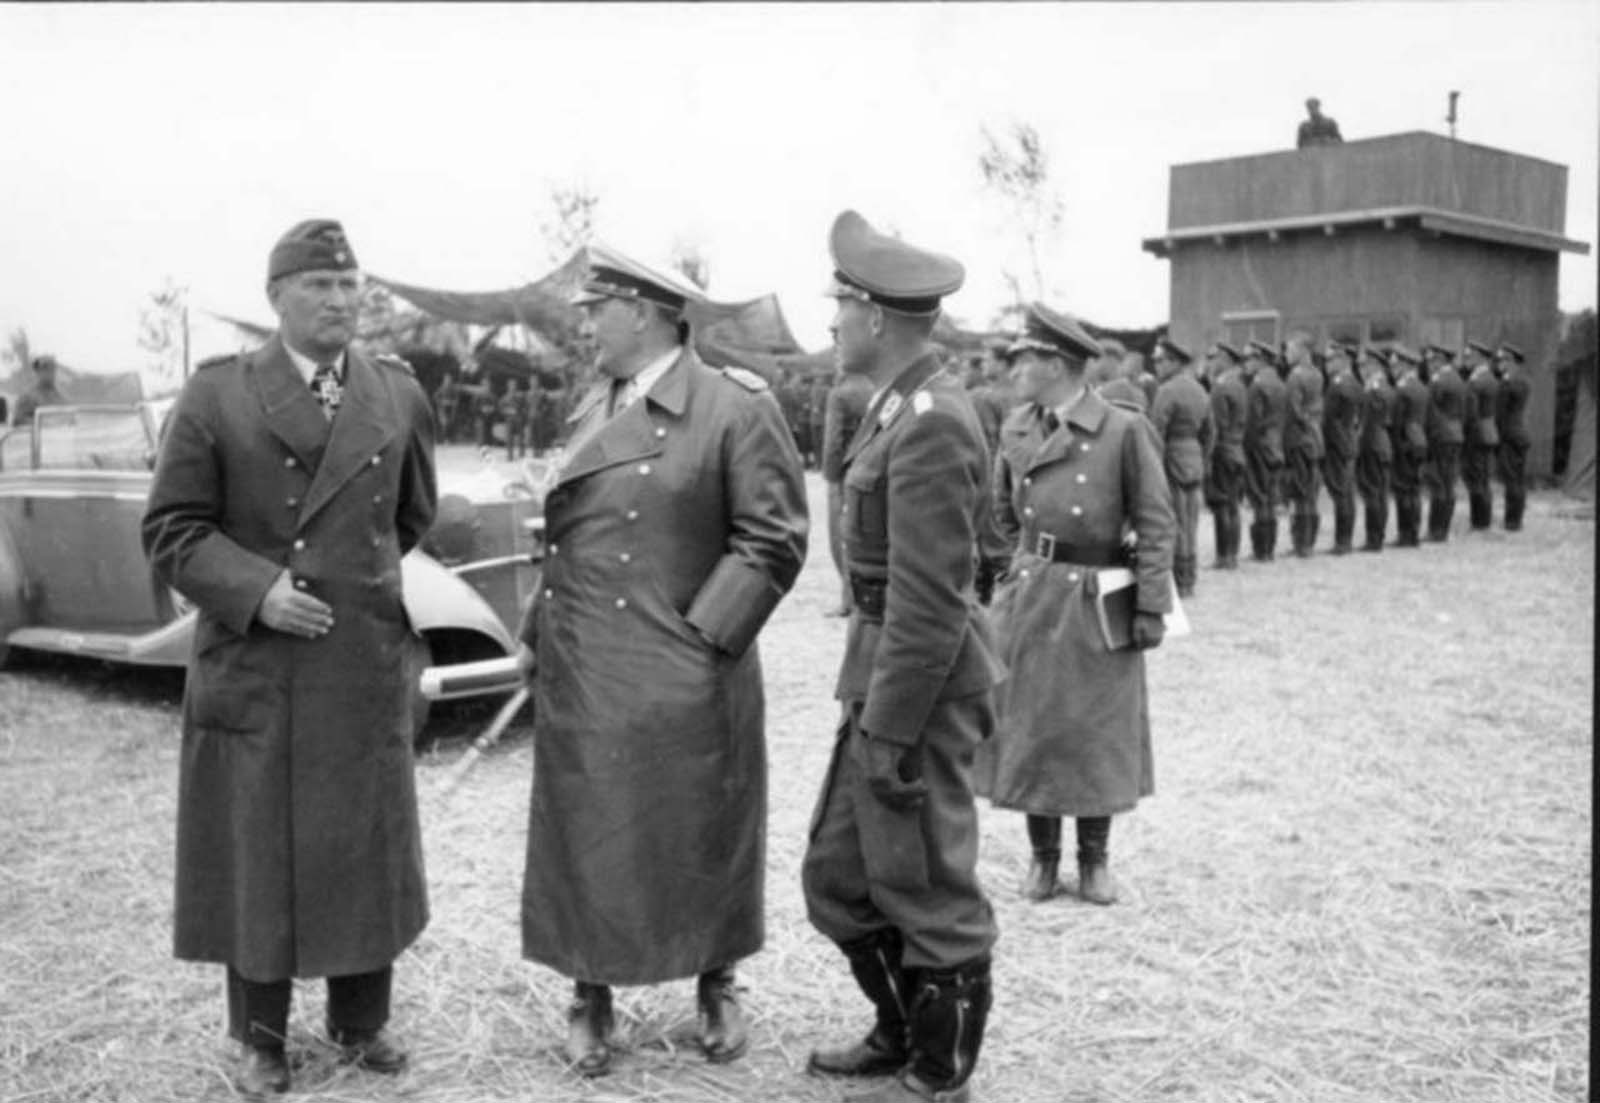 The Reichsmarschall with Galland (right) during an inspection tour in France during the Battle of Britain. Galland was one of the very few guys who could act normally and make sarcastic remarks to the fat man -